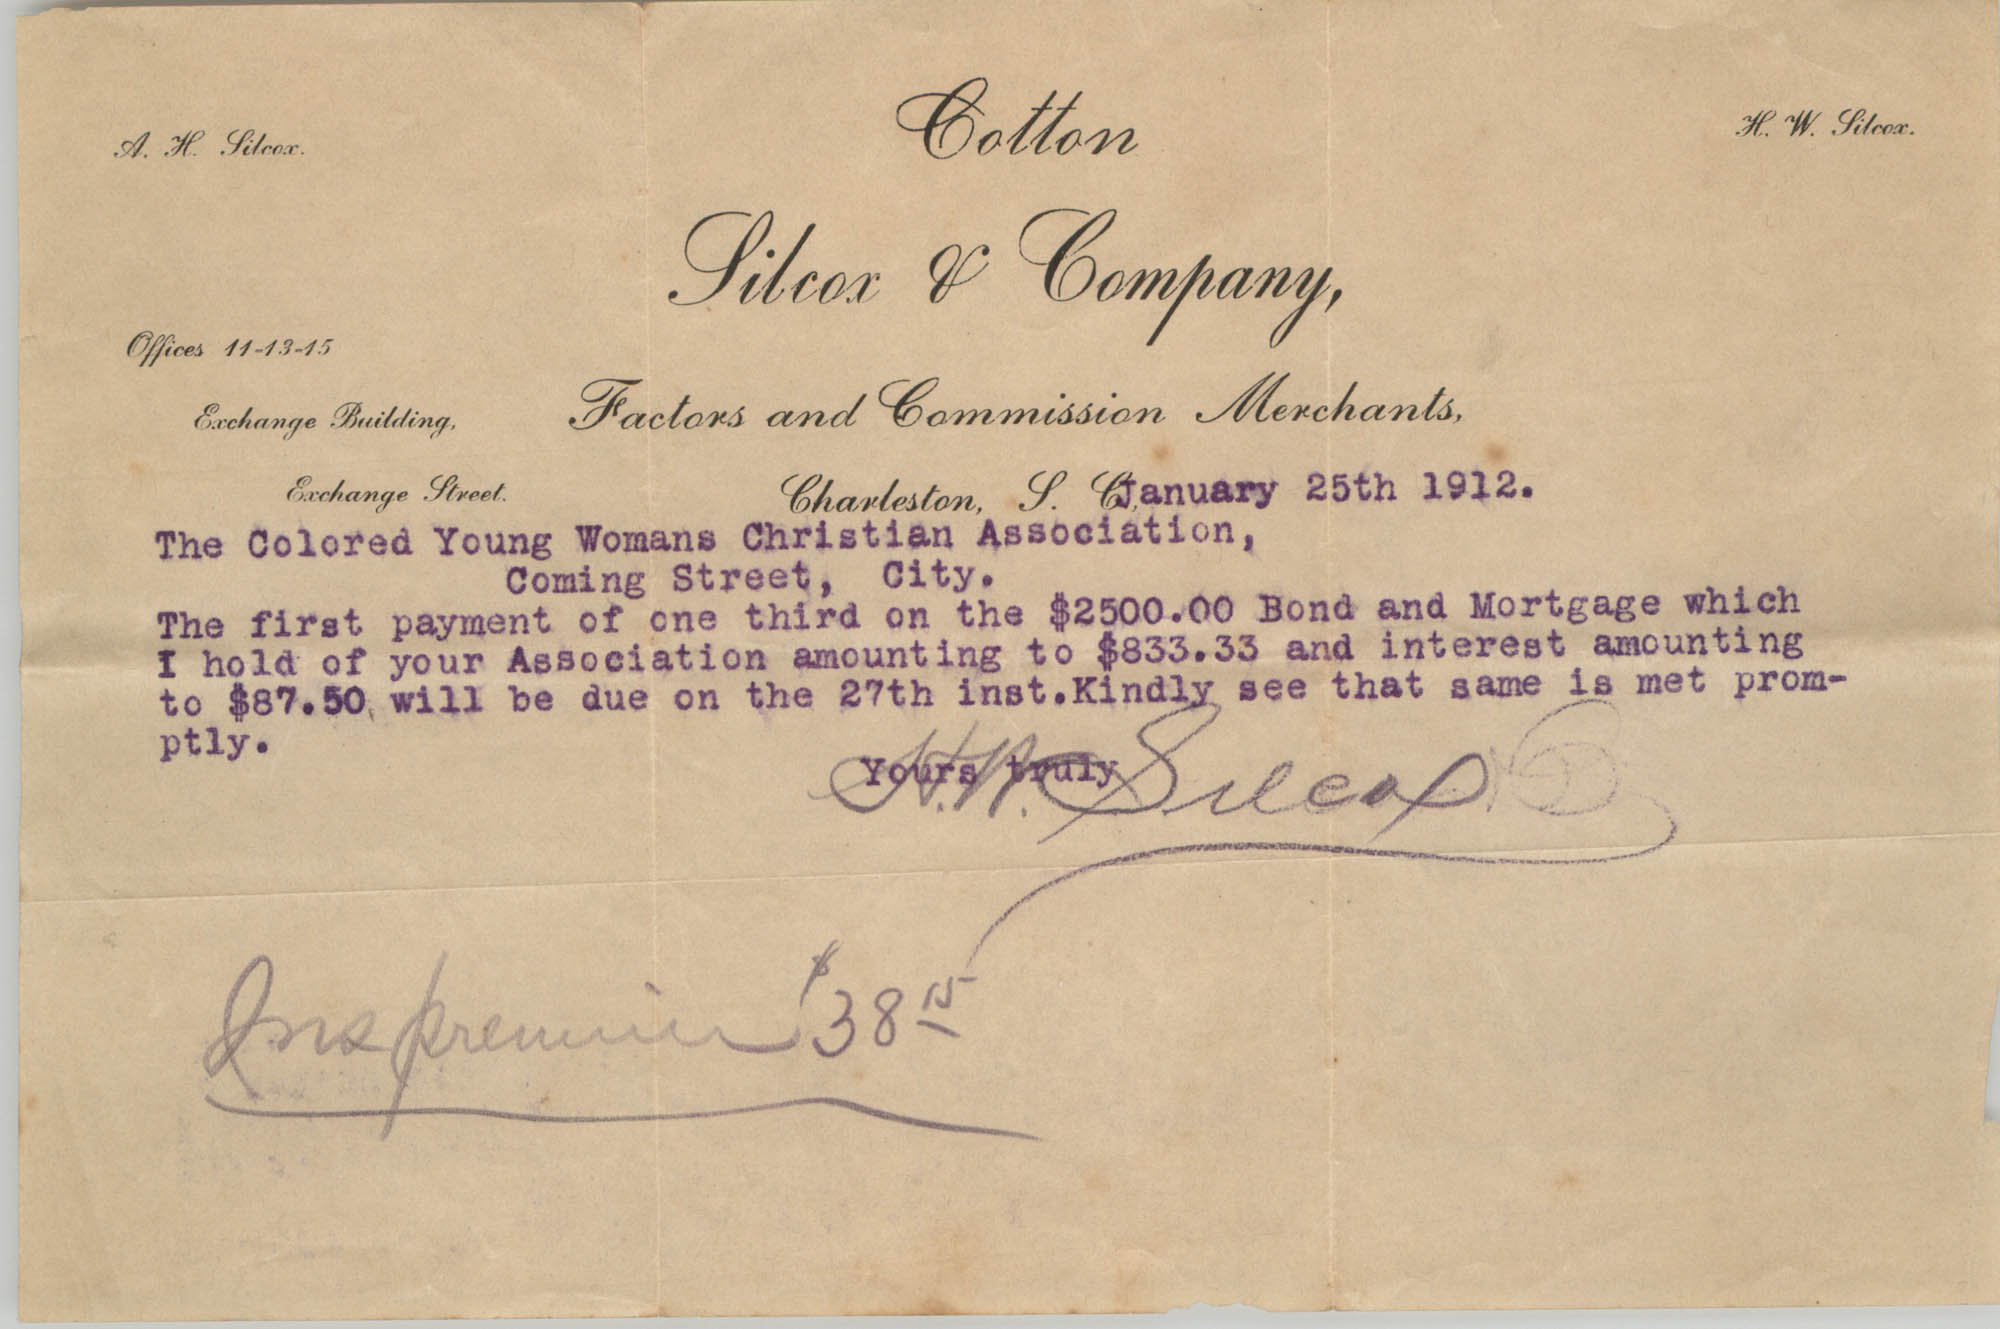 Letter from H. Willard Silcox to the Y.W.C.A., January 25, 1912